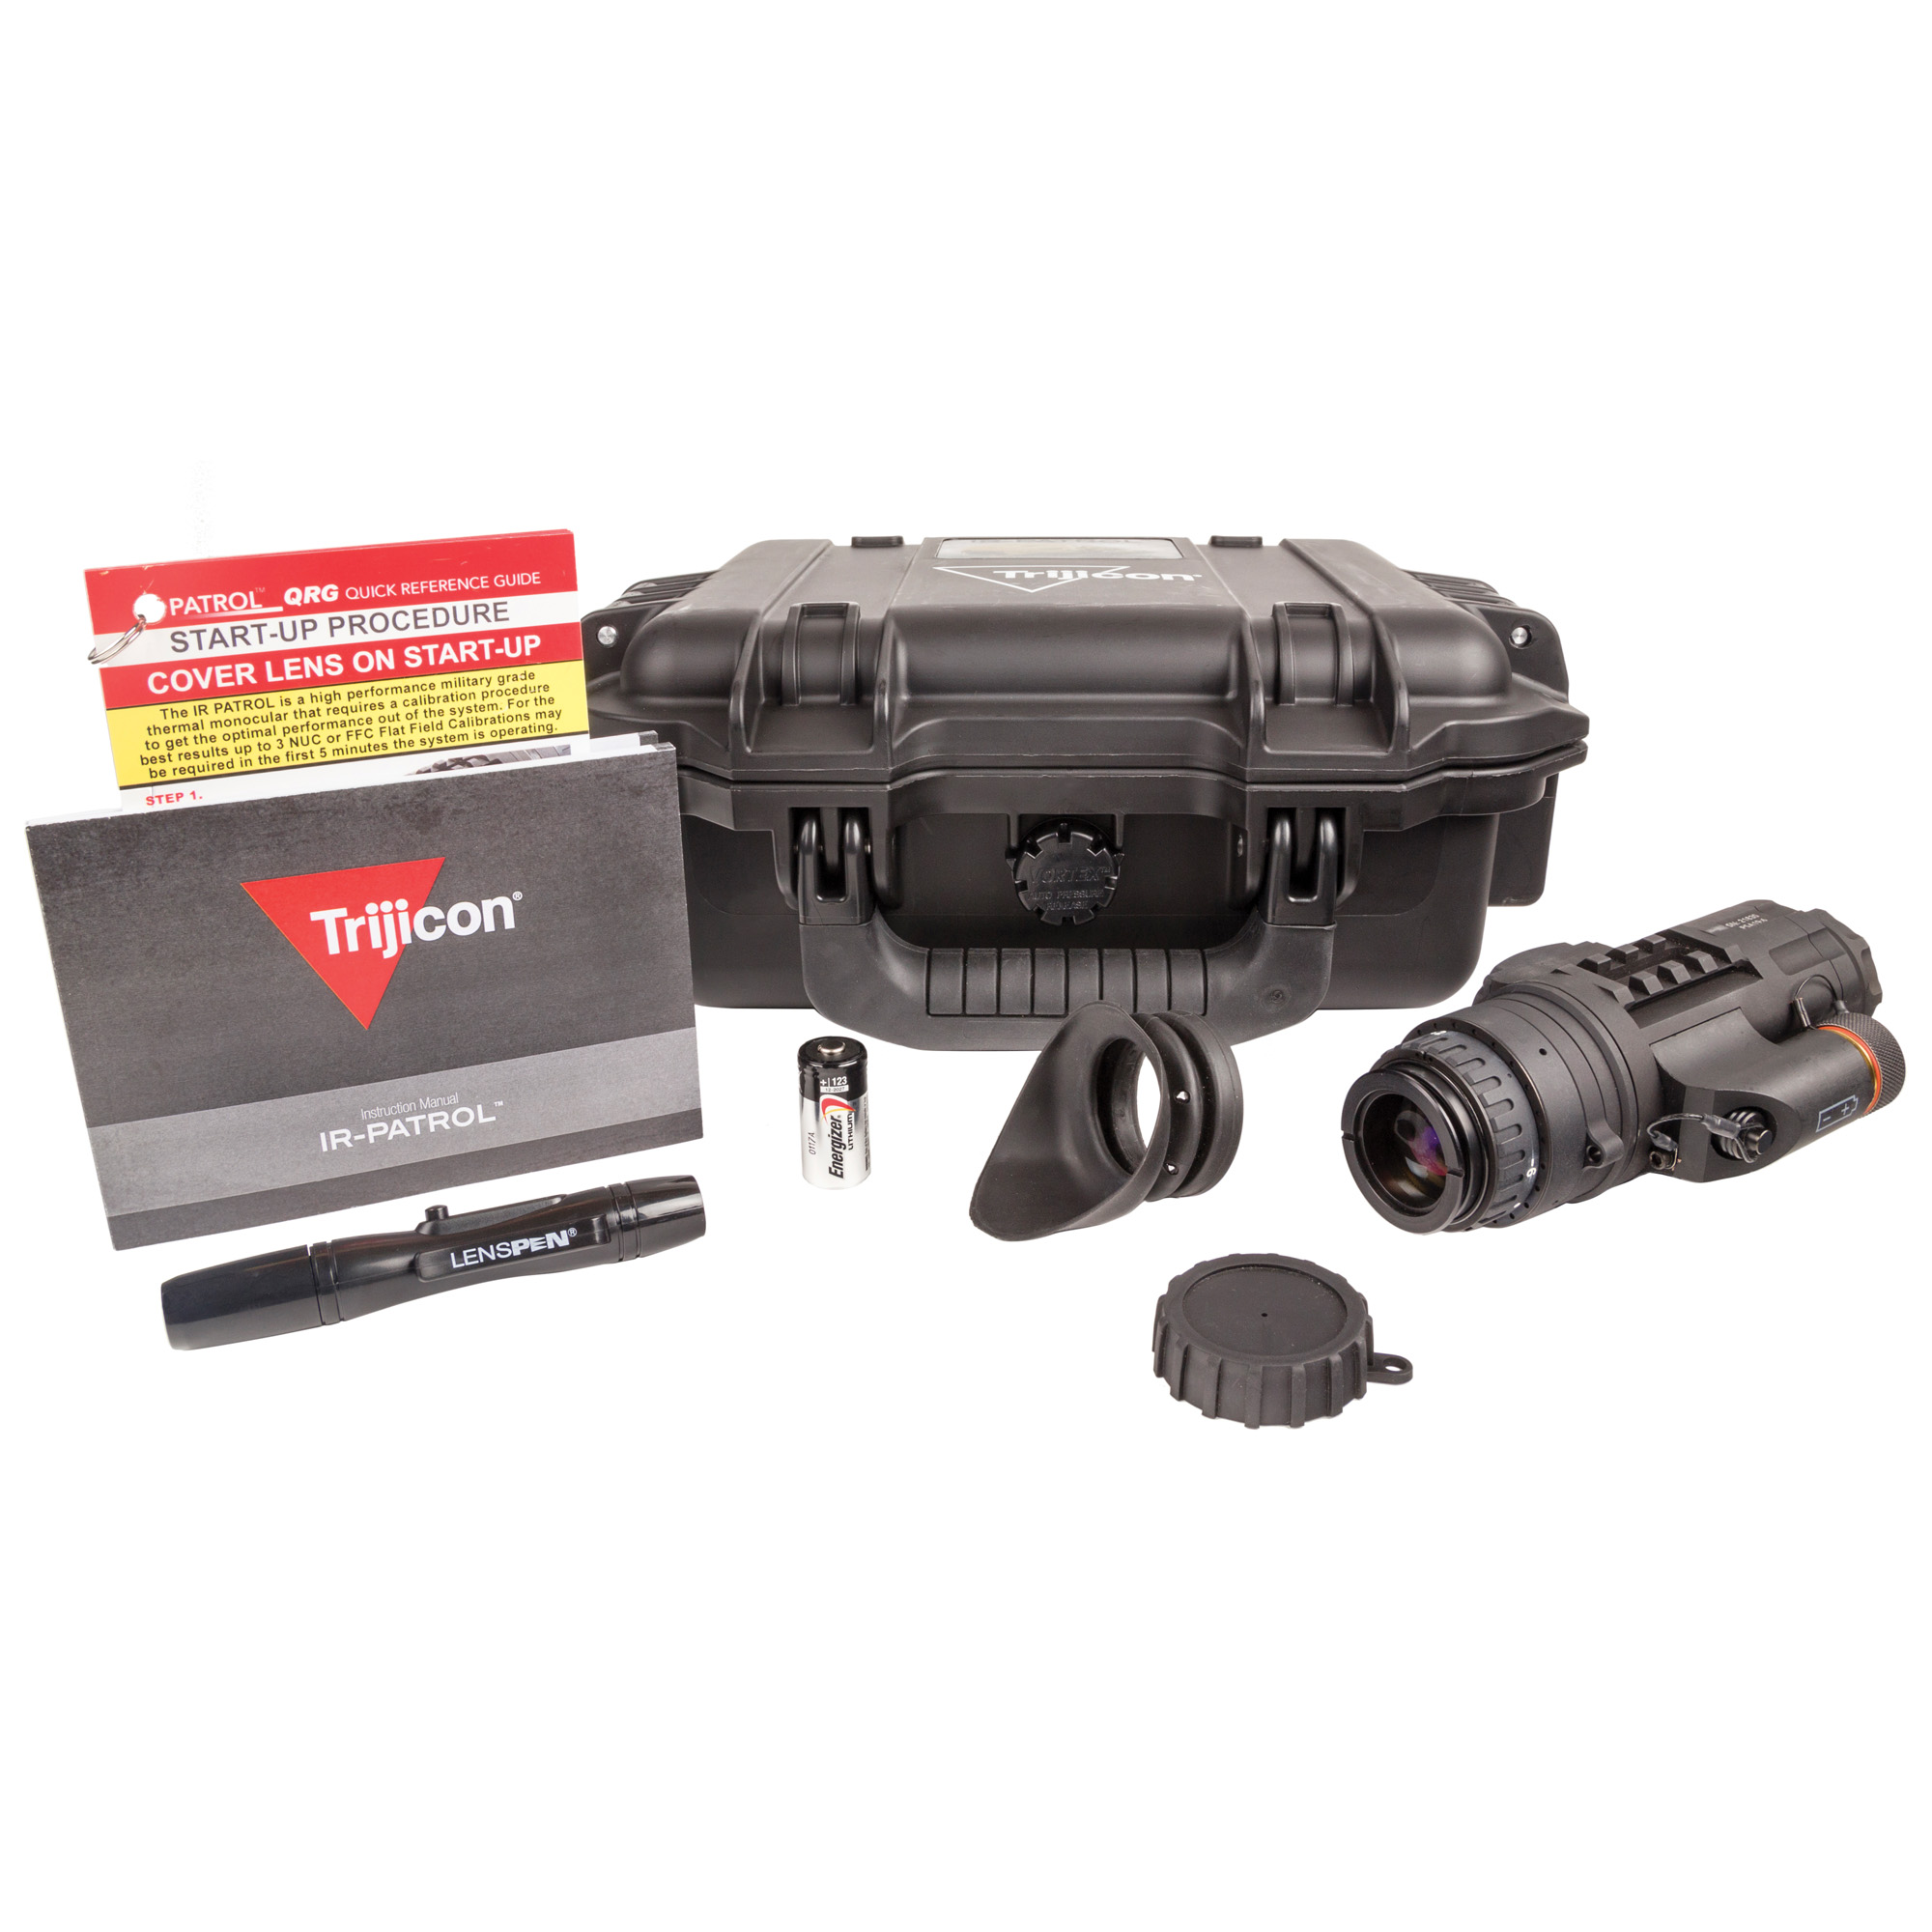 "Whether your mission is searching for a suspect or securing your position"" the Trijicon IR-PATROL(R) is the ideal multipurpose thermal imaging monocular. It's compact"" lightweight"" rugged and offers some of the most advanced performance options on the market"